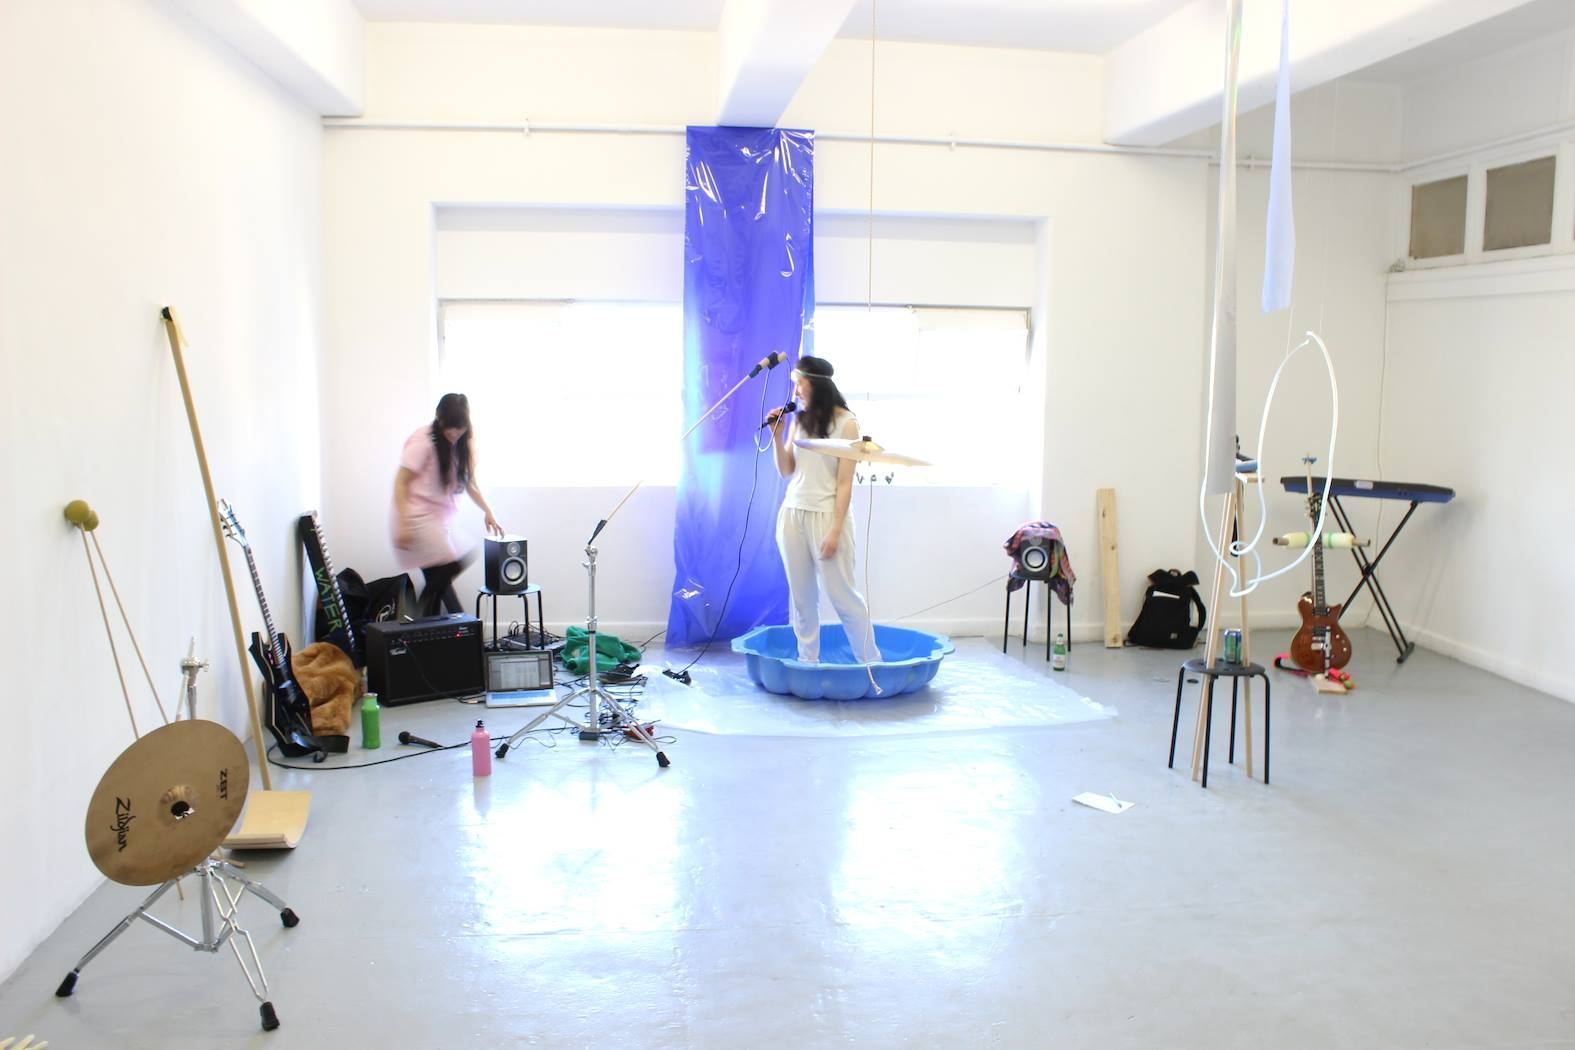 Waterfall-Person-and-Paradise-Structures-LEAKY-WAVE-Performances-6-Sept-2014-1.jpg